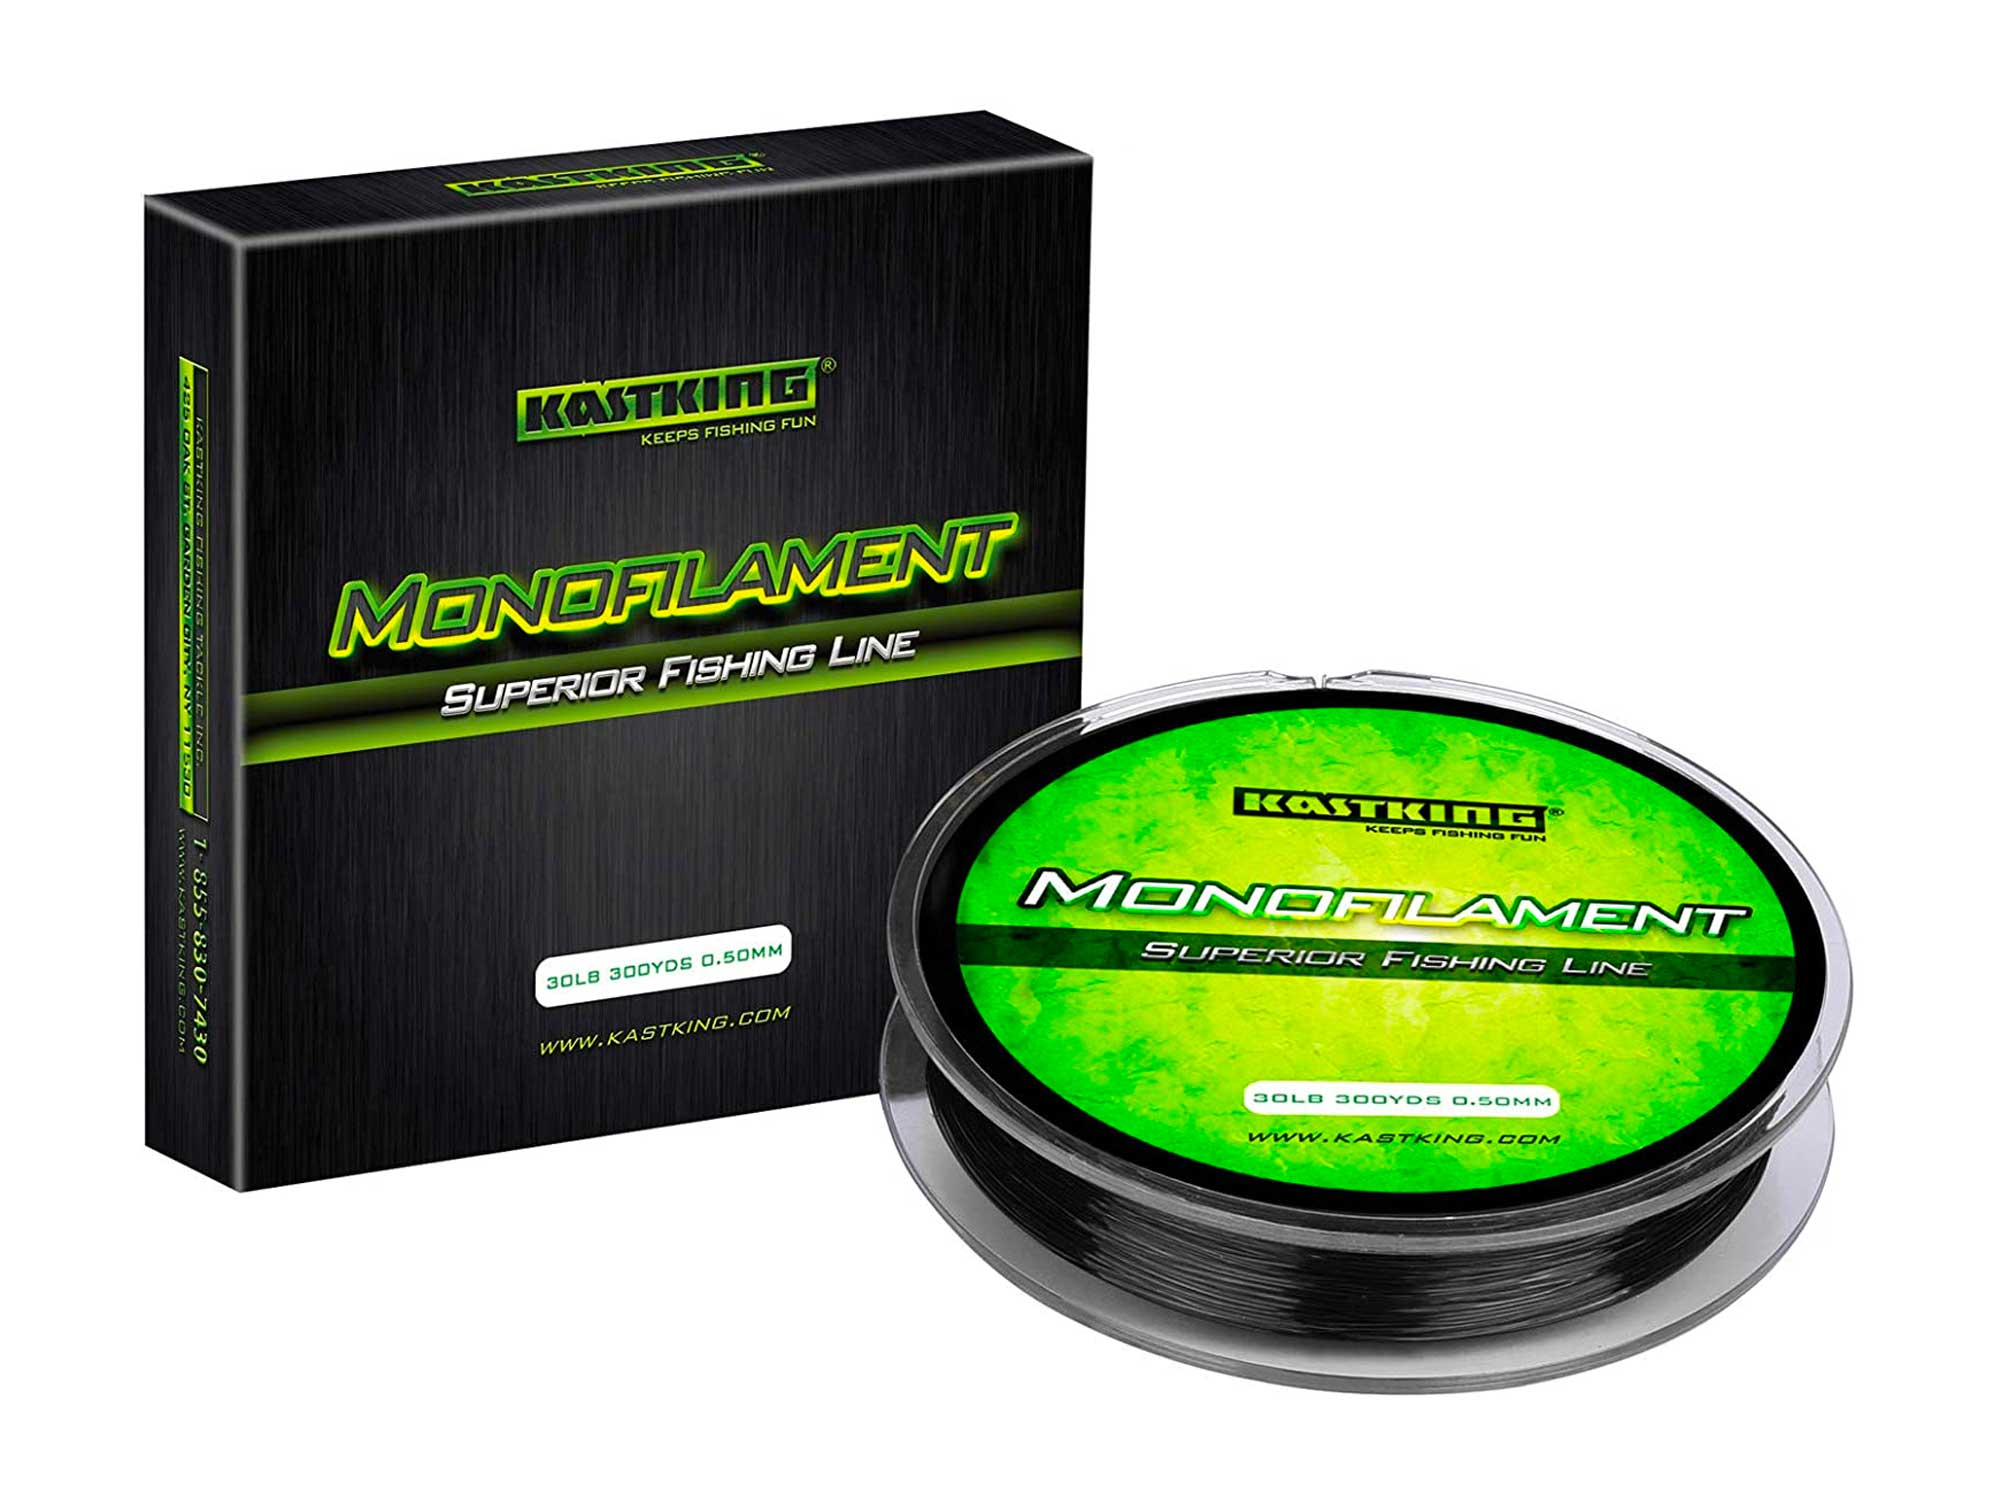 KastKing World's Premium Monofilament Fishing Line - Paralleled Roll Track - Strong and Abrasion Resistant Mono Line - Superior Nylon Material Fishing Line